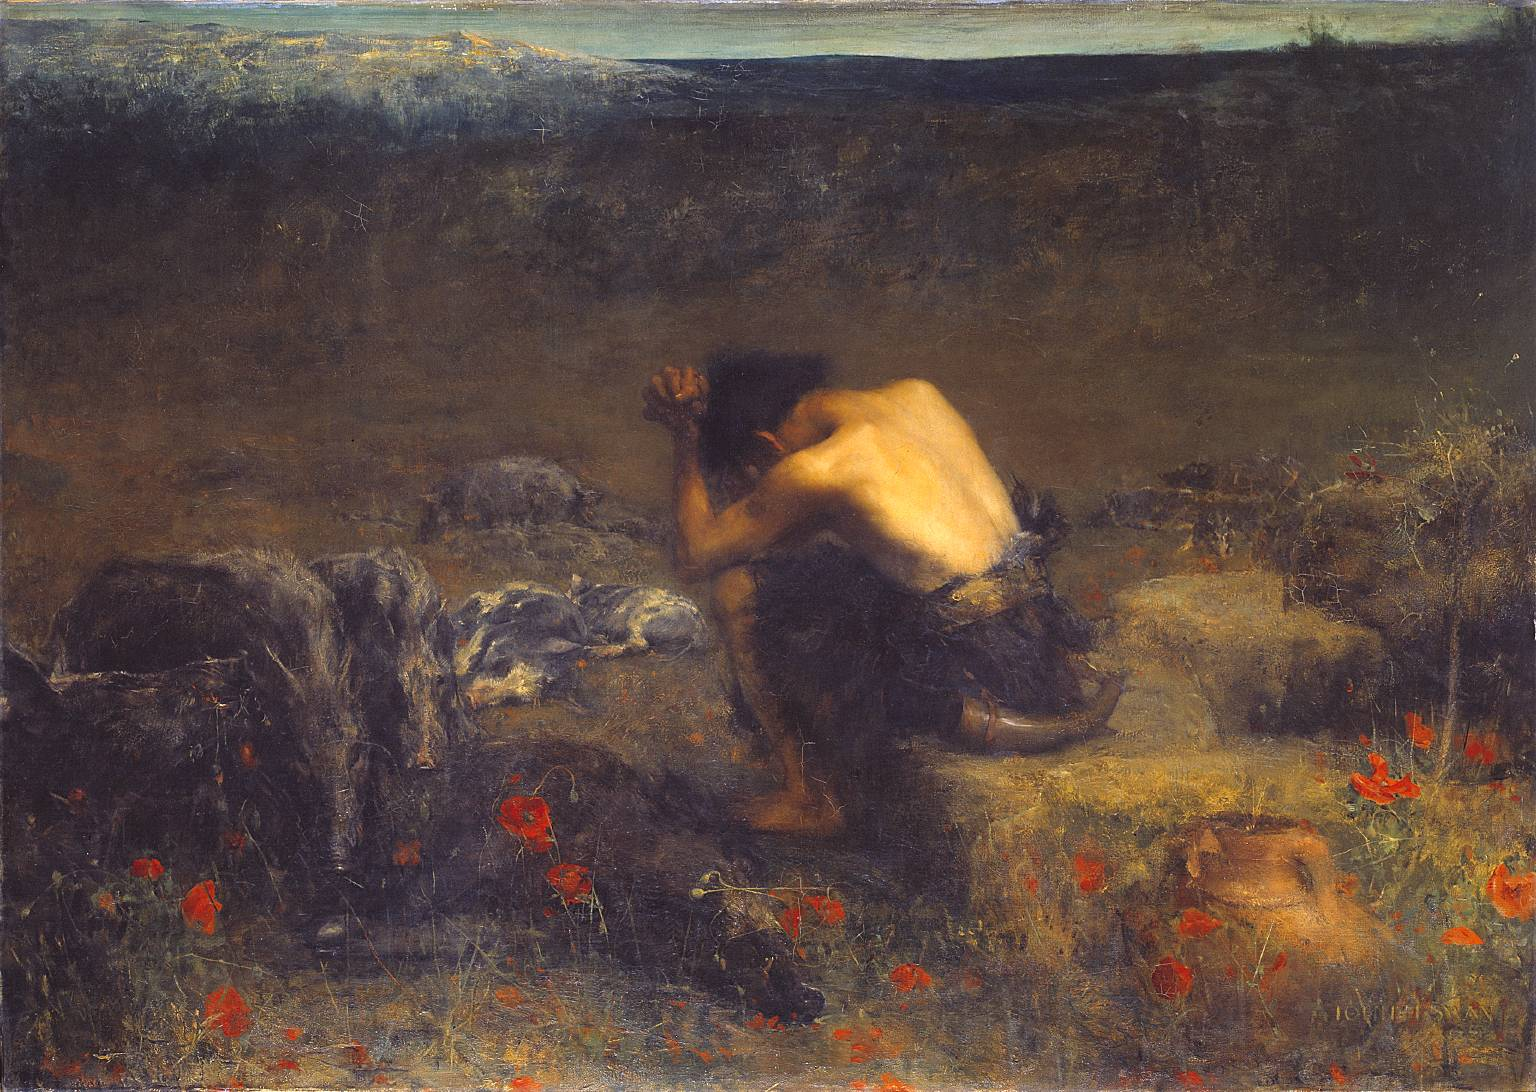 John Macallan Swan,  The Prodigal Son  (1888). Presented by the Trustees of the Chantrey Bequest 1889  http://www.tate.org.uk/art/work/N01569